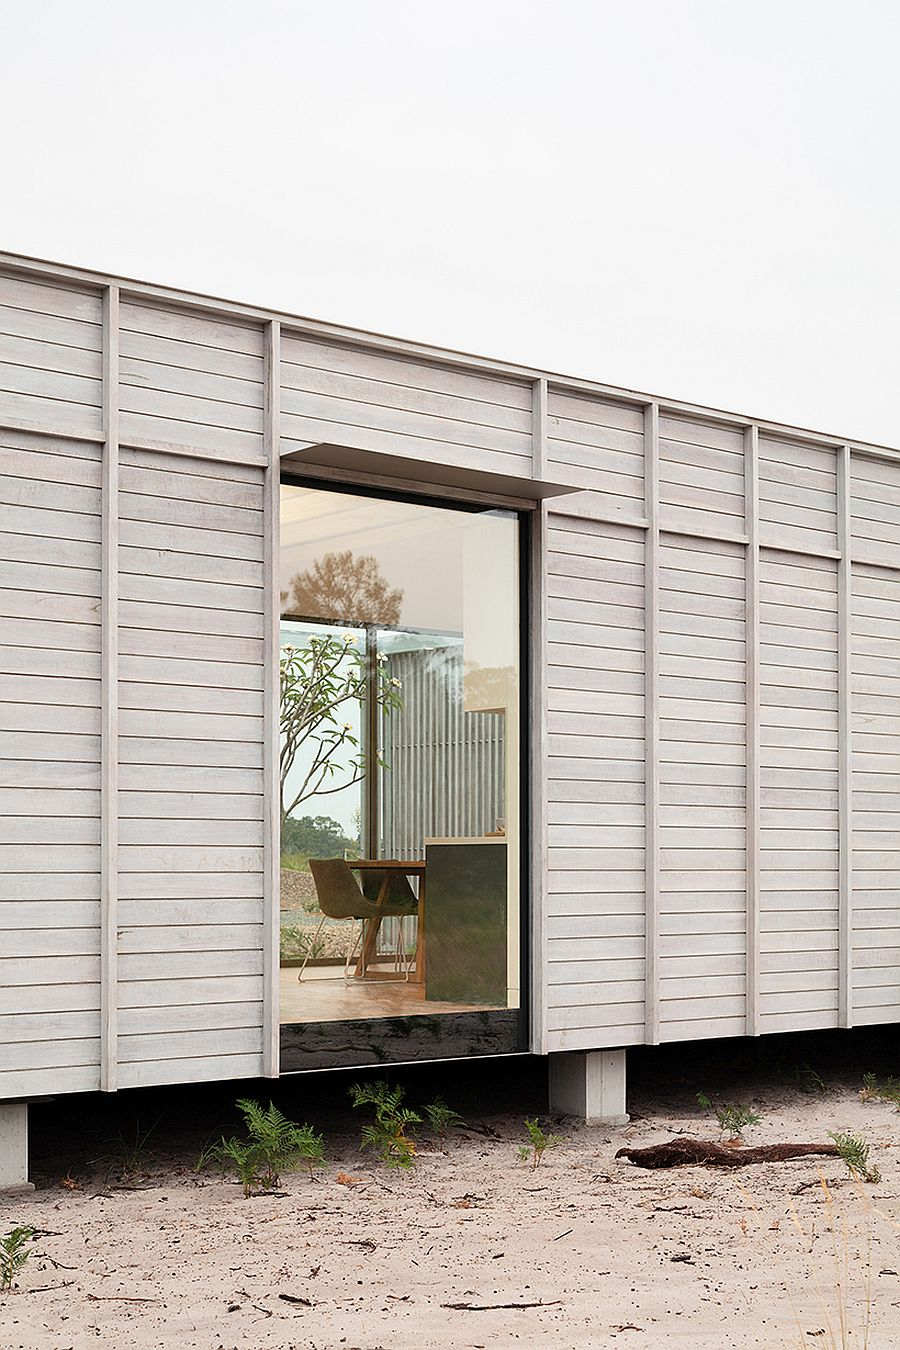 Simple-yet-cleverly-placed-openings-in-the-prefab-can-be-altered-depending-on-necessity-25477